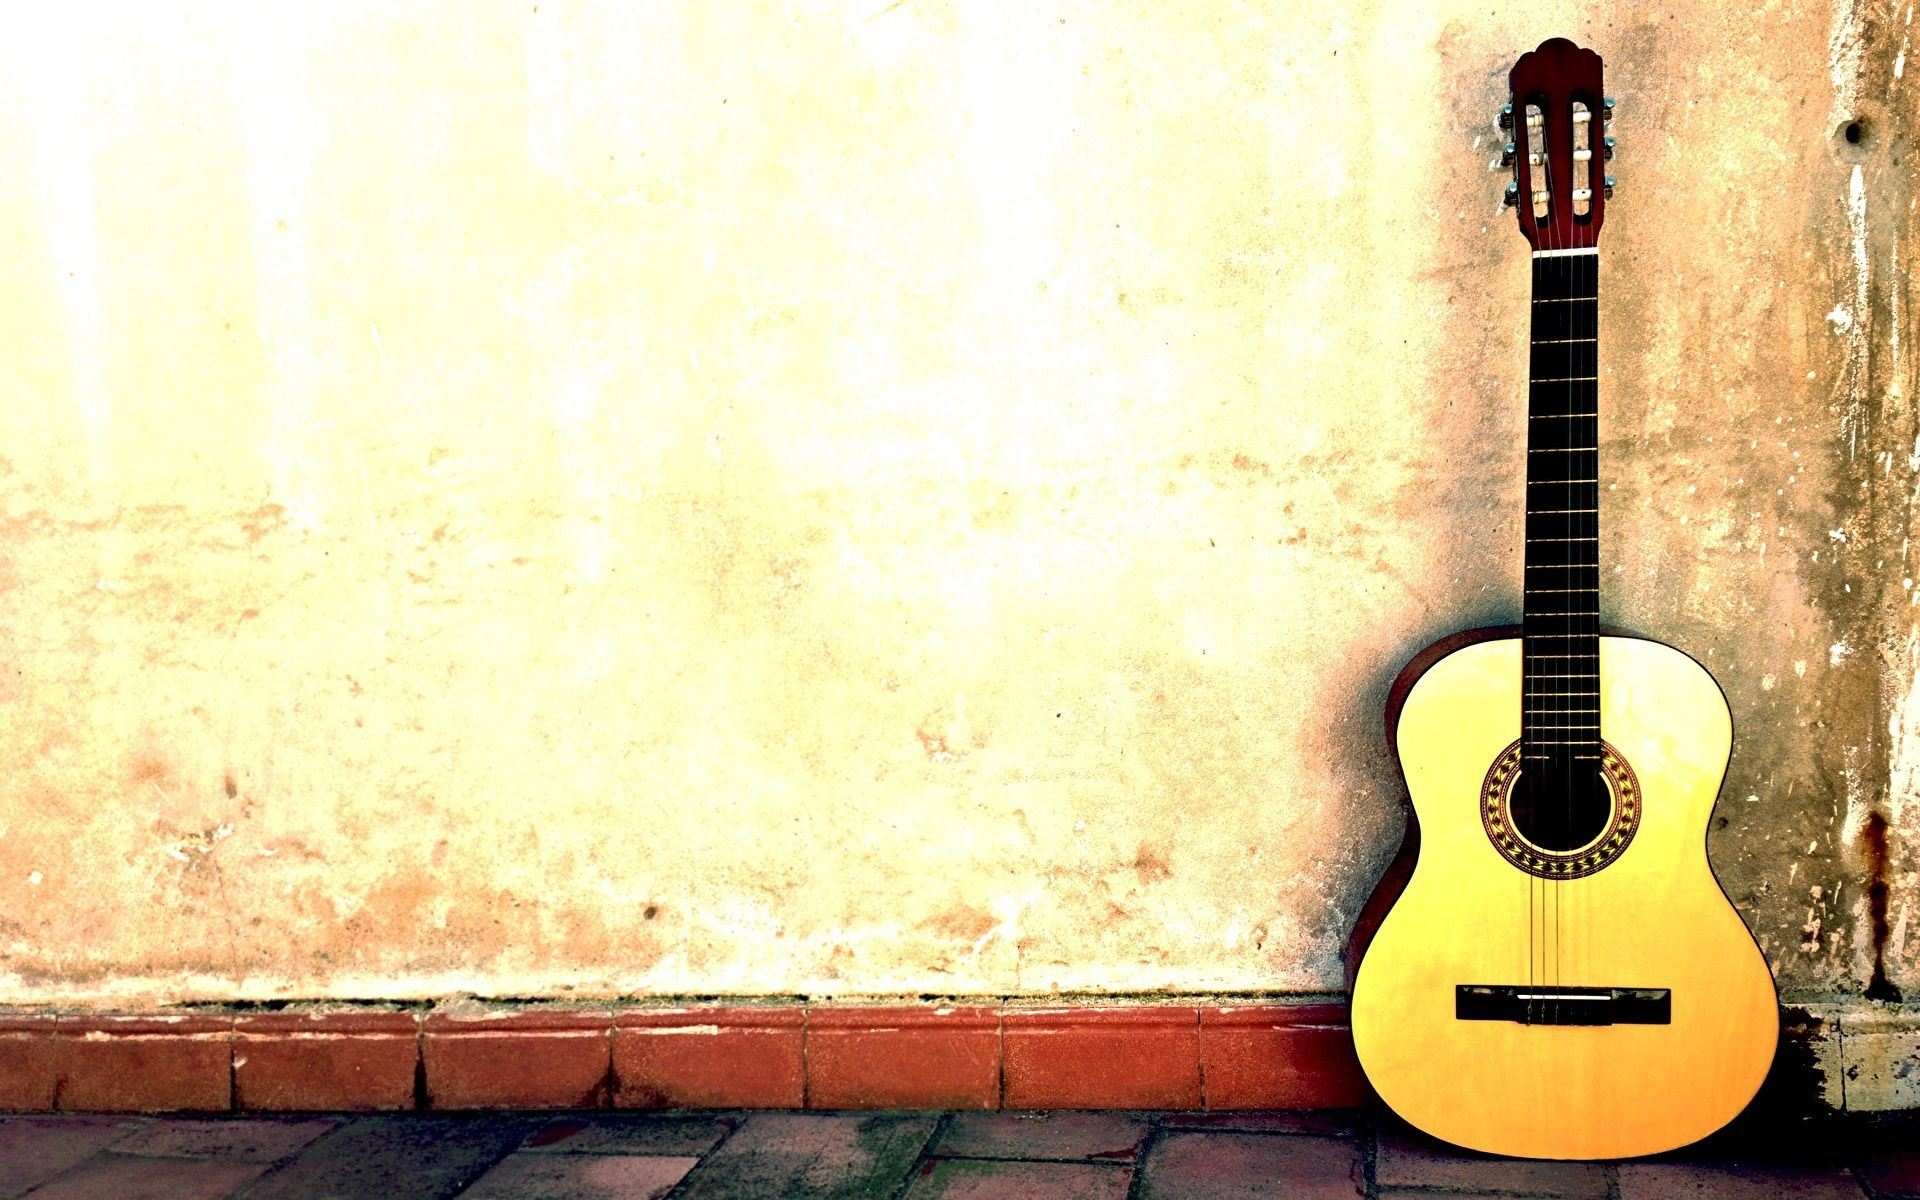 Acoustic Guitar Yellow, Background Wallpaper